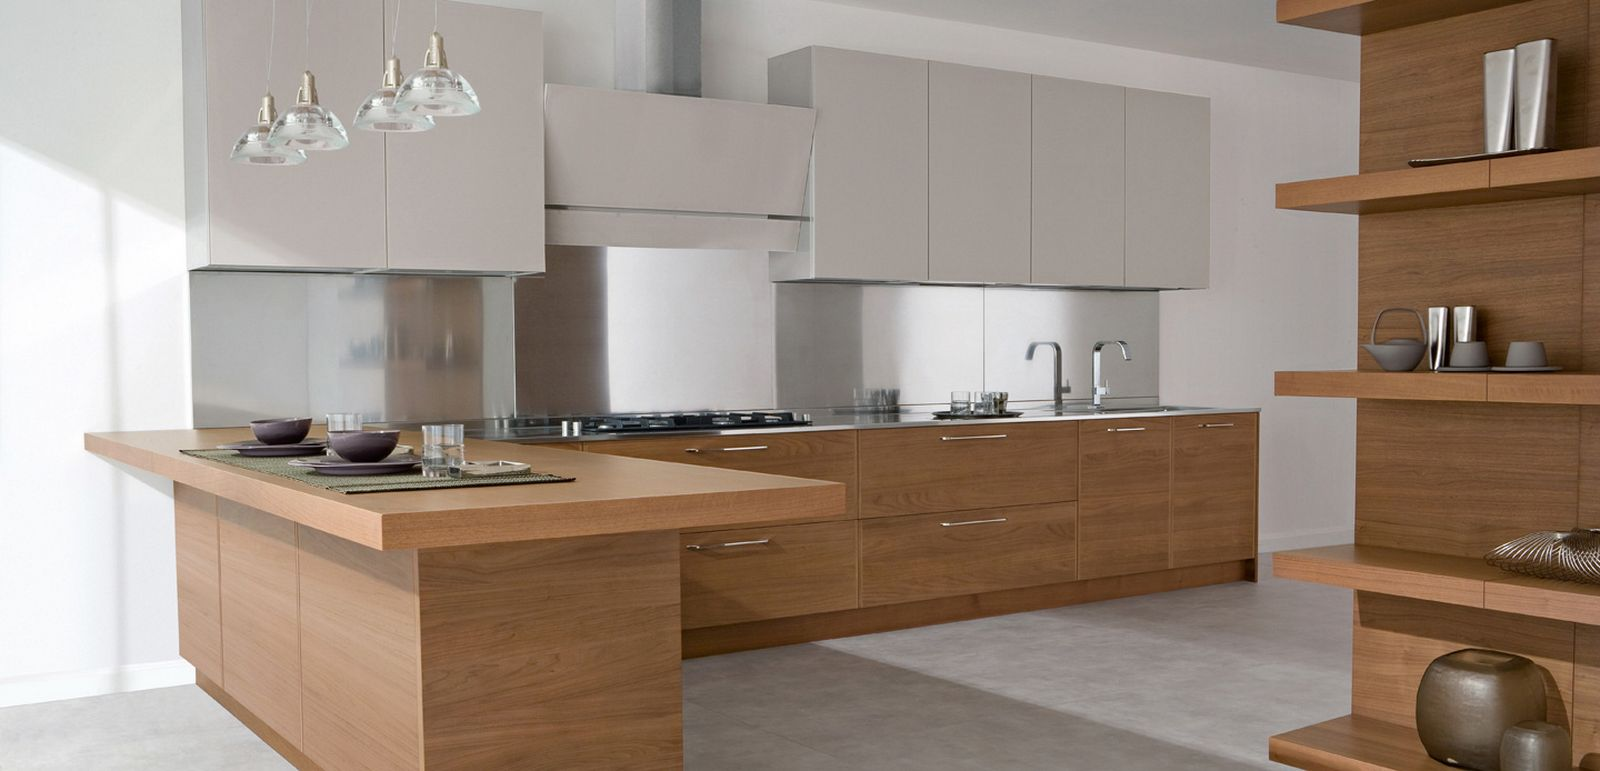 design-ideas-home-design-inspiration-wood-and-lacquered-kitchen-design